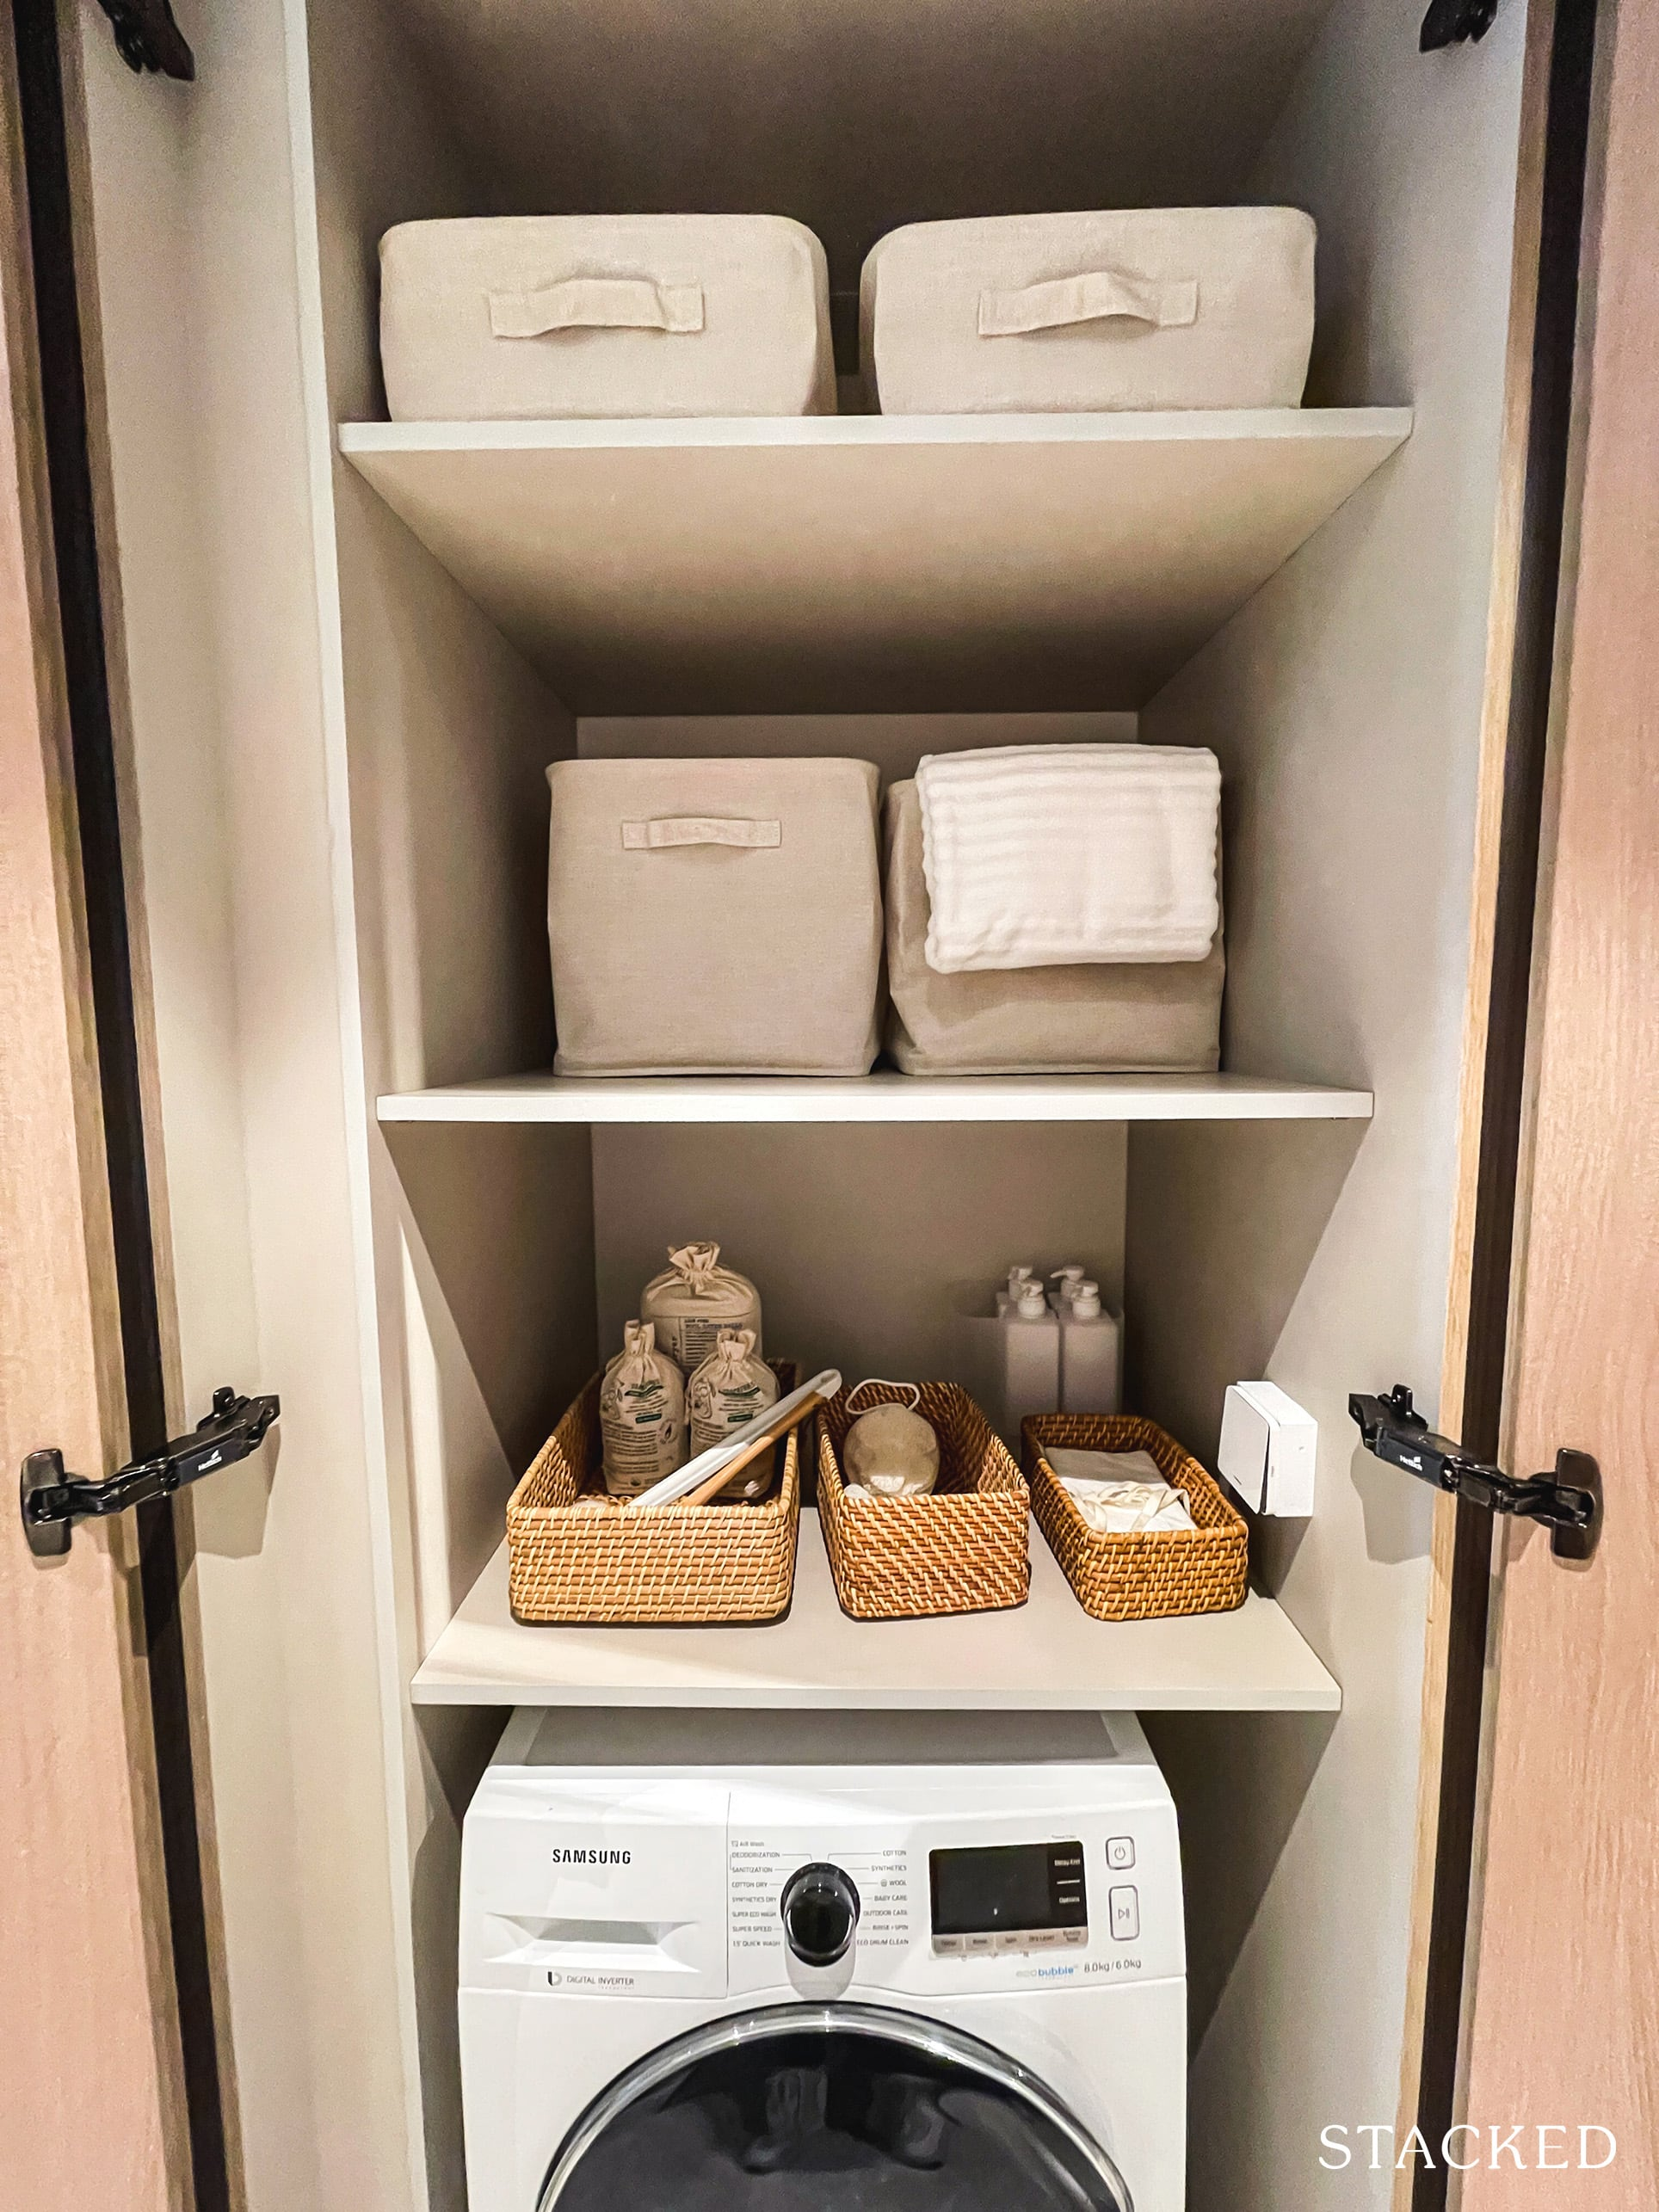 ki residences 2 bedroom study washer